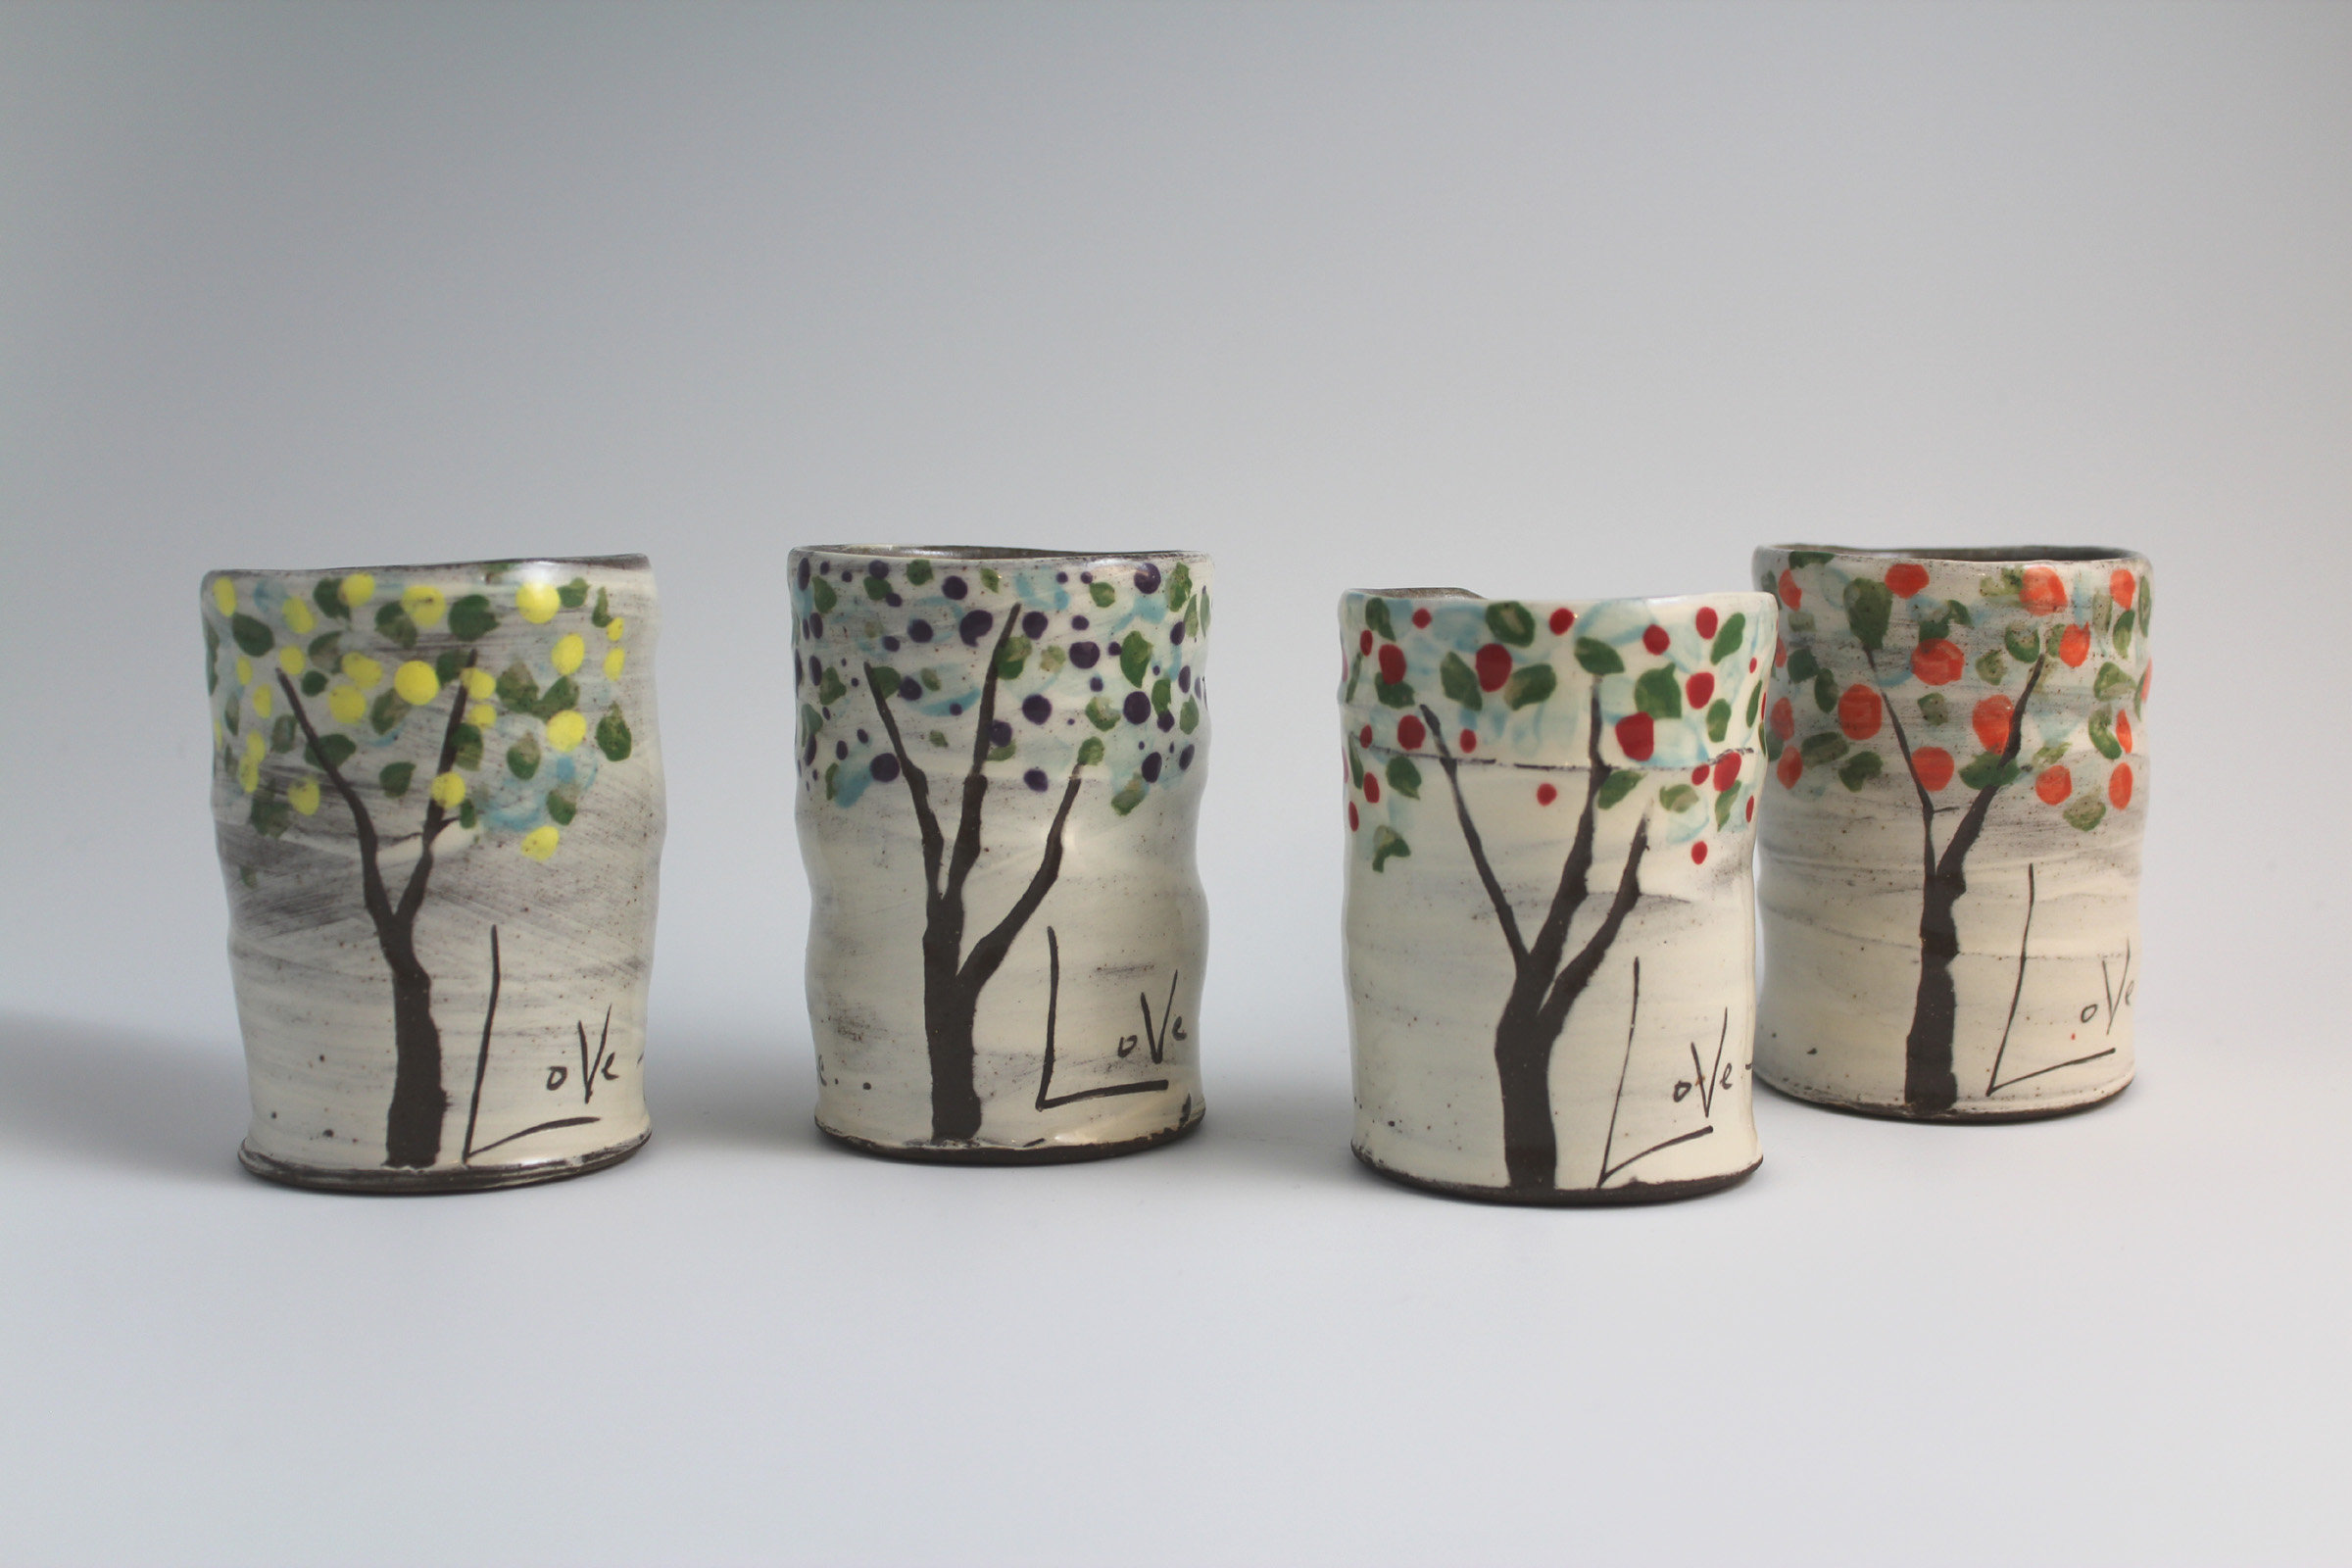 Fruit Trees Mug Set By Noelle VanHendrick And Eric